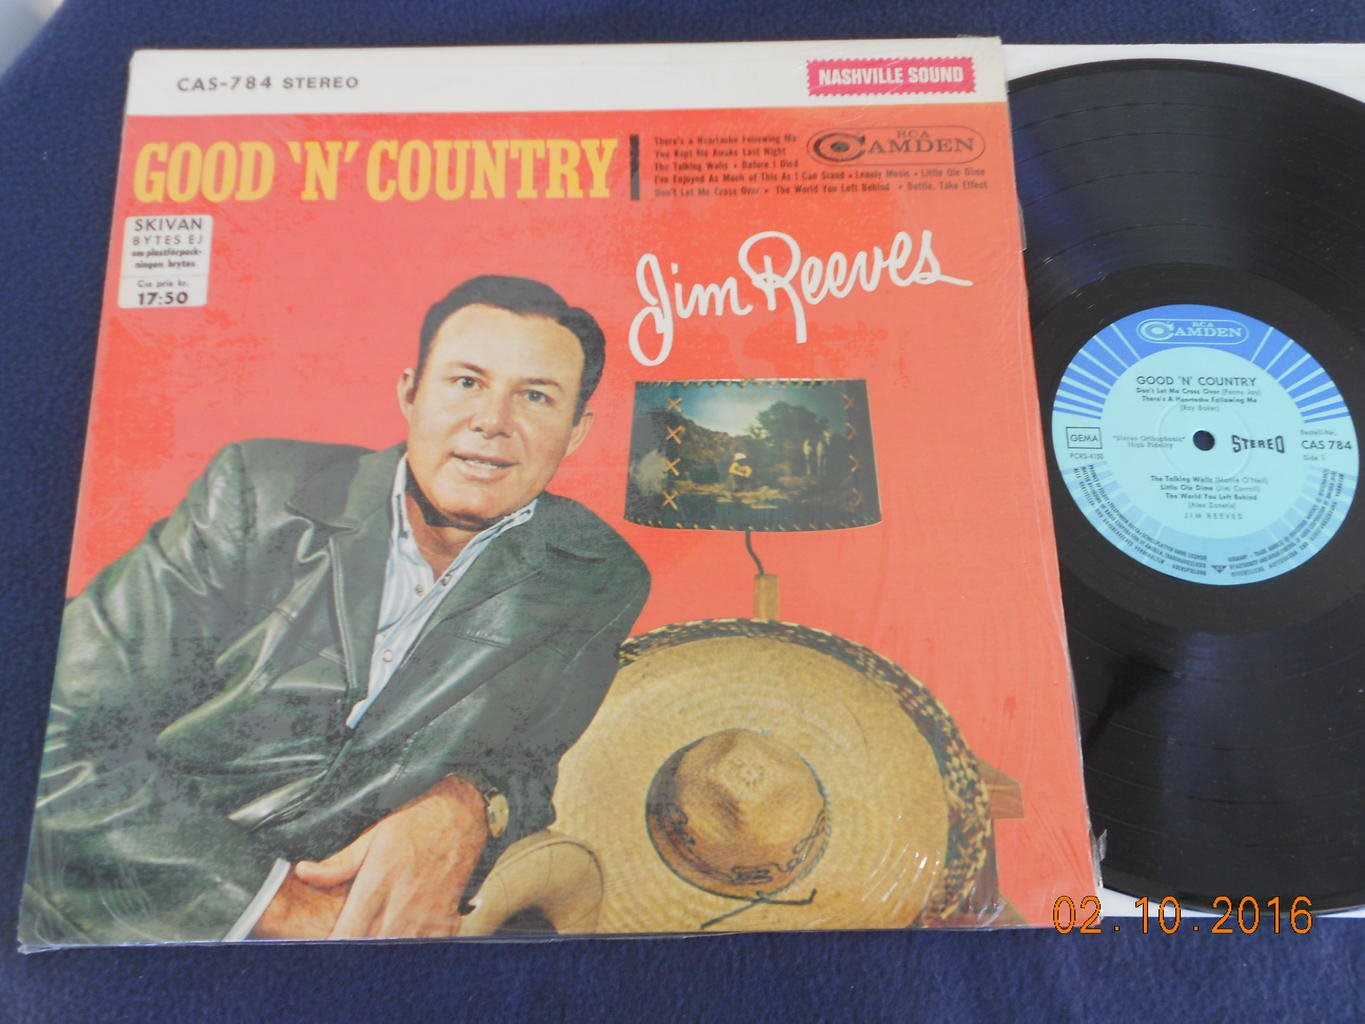 JIM REEVES - Good n Country, LP RCA Camden CAS-784, Tyskland 1964